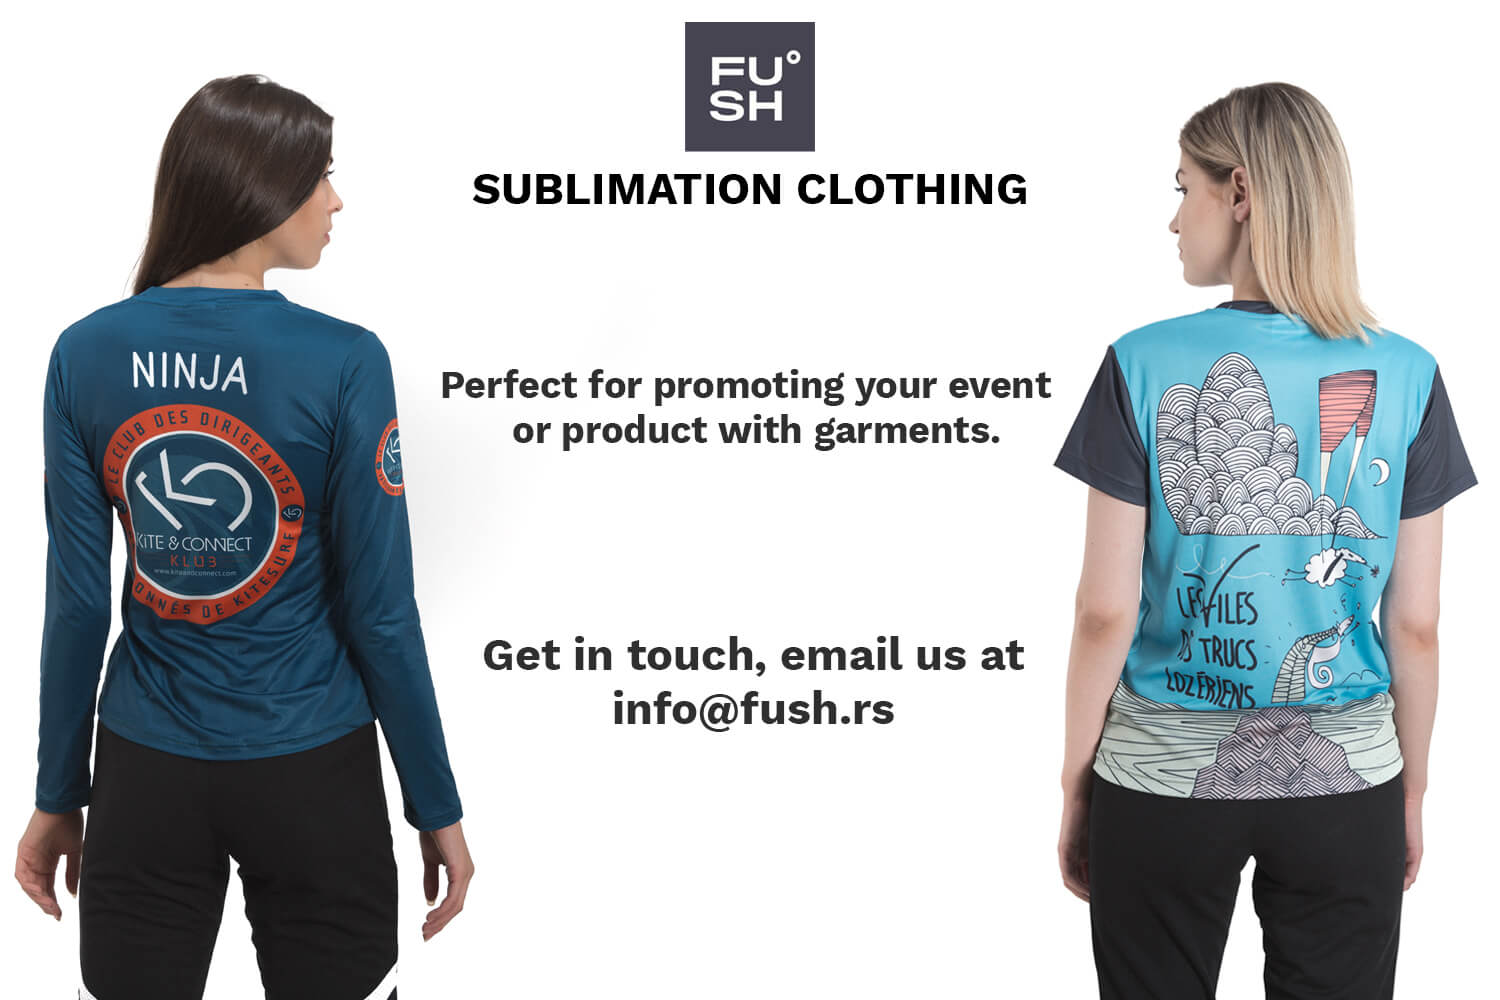 """Two female models wearing sublimated long-sleeve shirt and t-shirt. """"FUSH"""" logo is visible in the upper center of the image."""